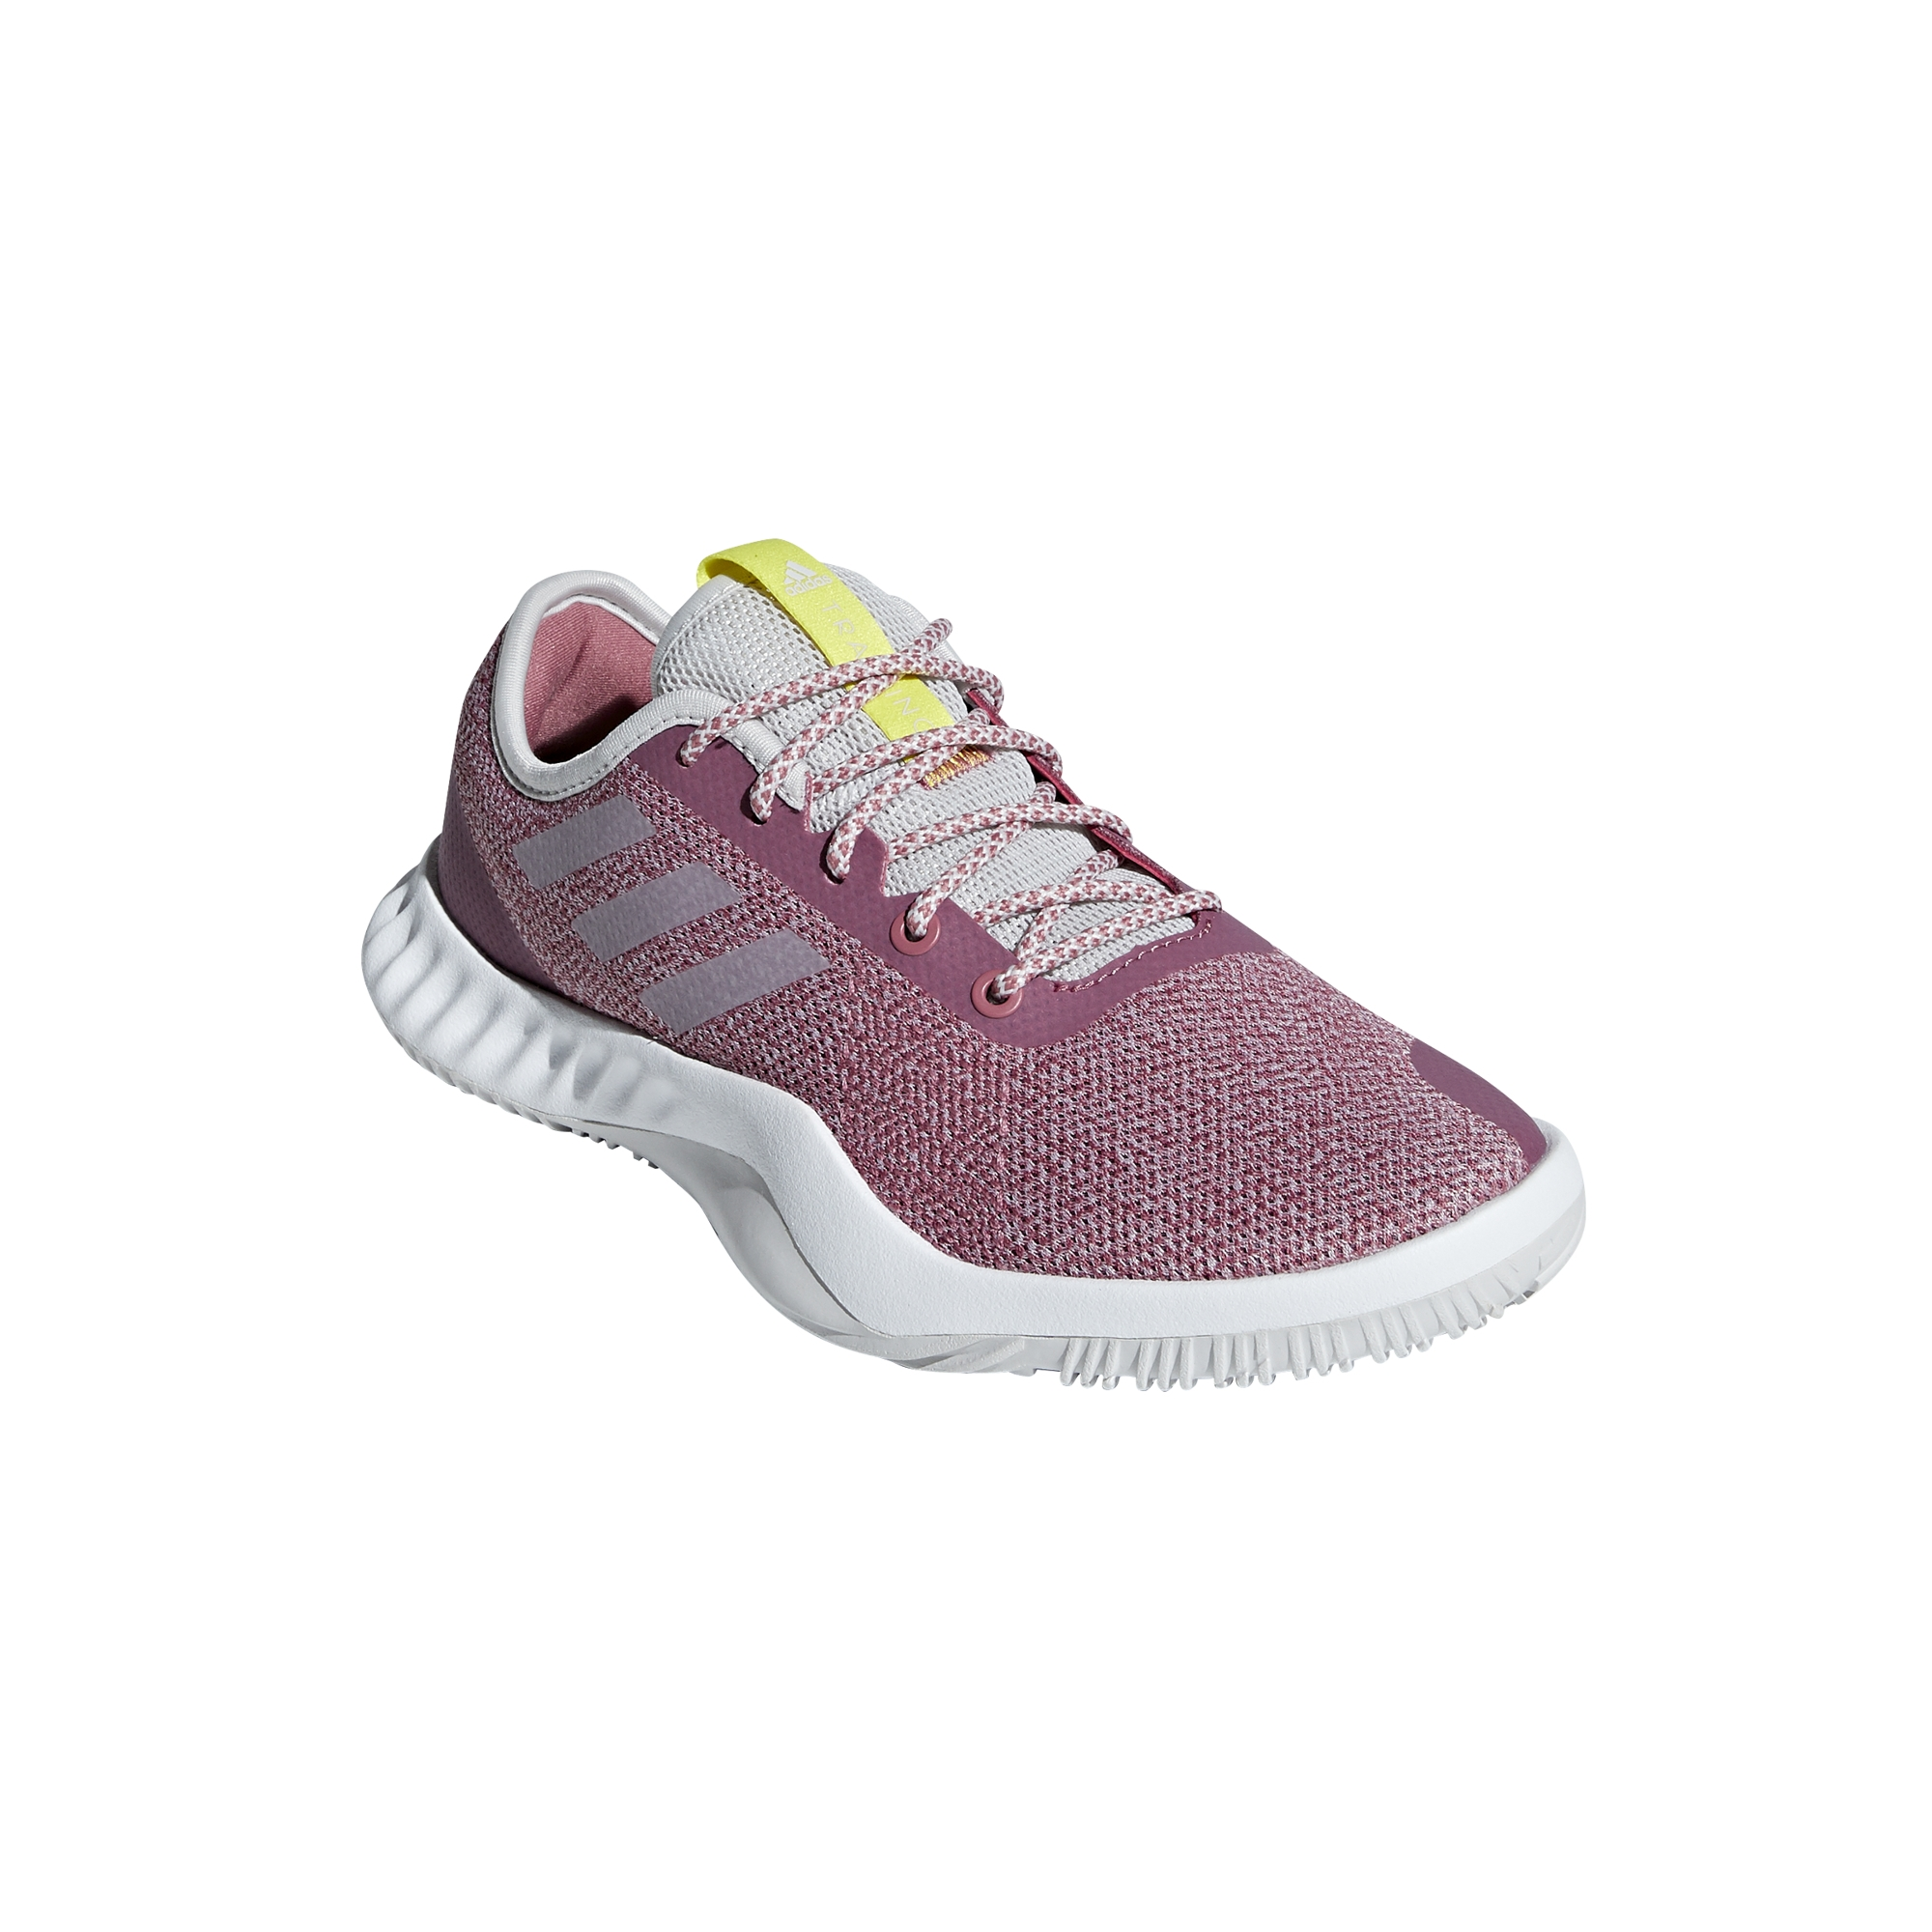 low priced f7bbb 6c0c9 Chaussures femme adidas CrazyTrain LT